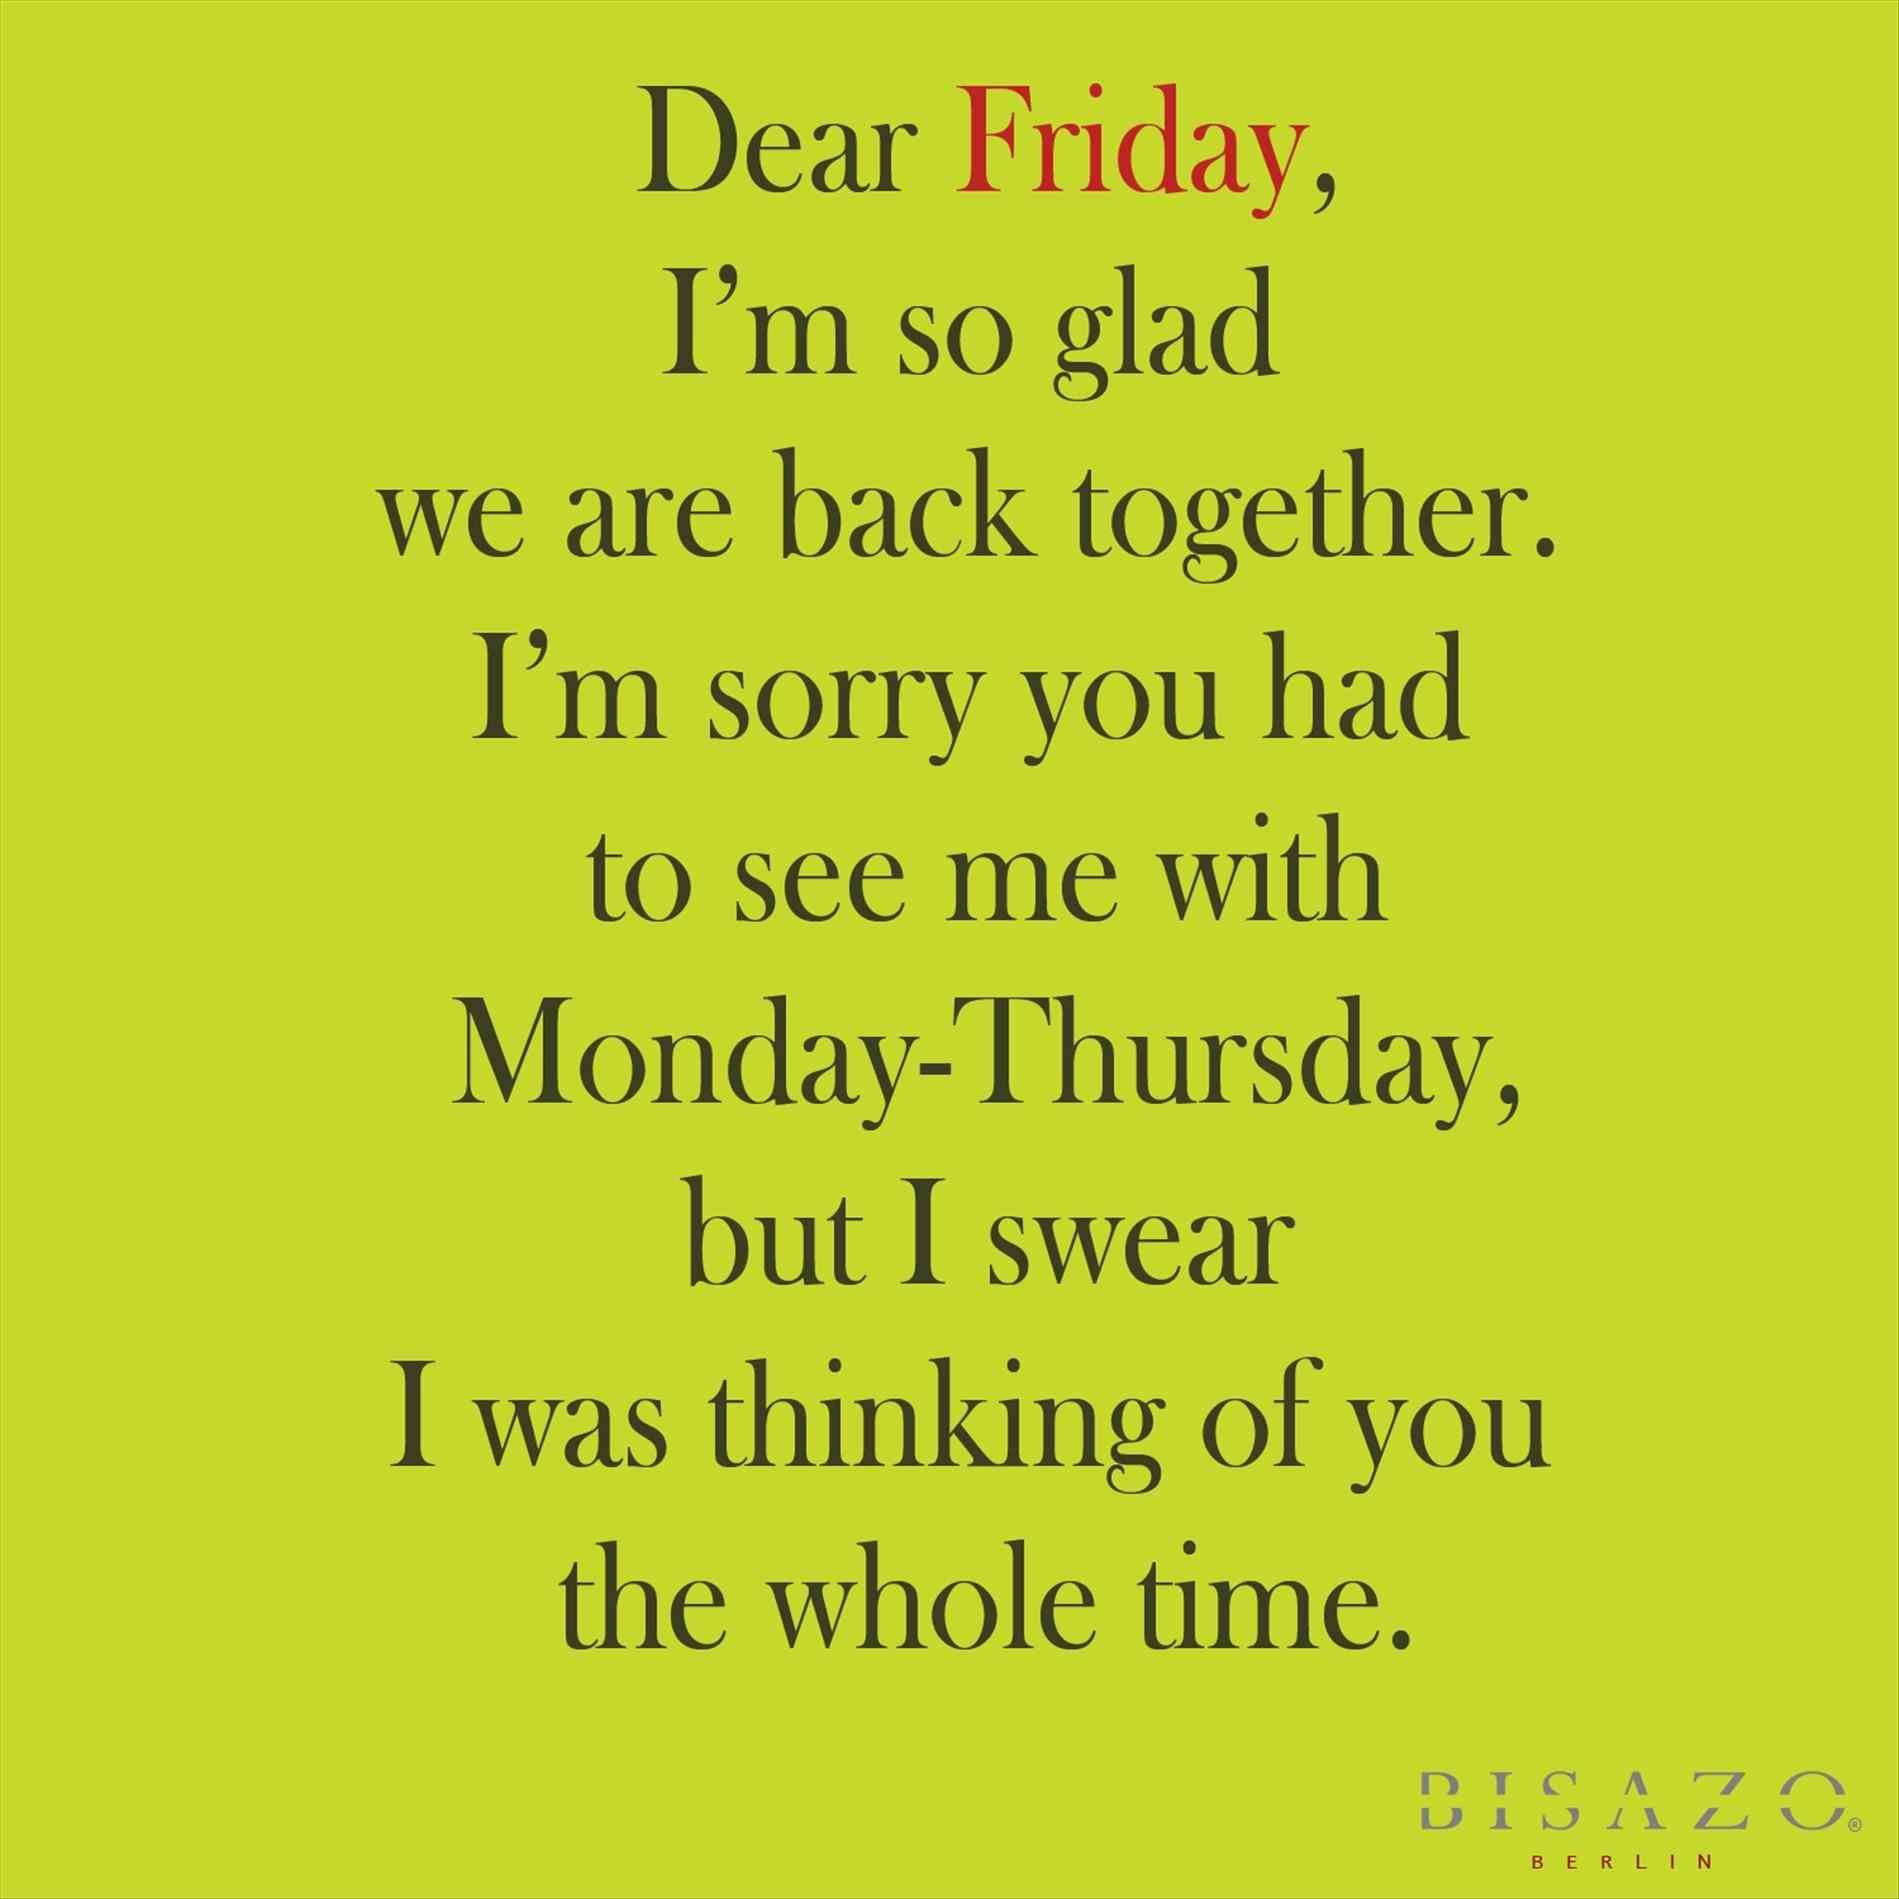 Inspirational Quotes For Work Friday About Its Friday Quotes Friday Quotes Funny Friday Motivational Quotes